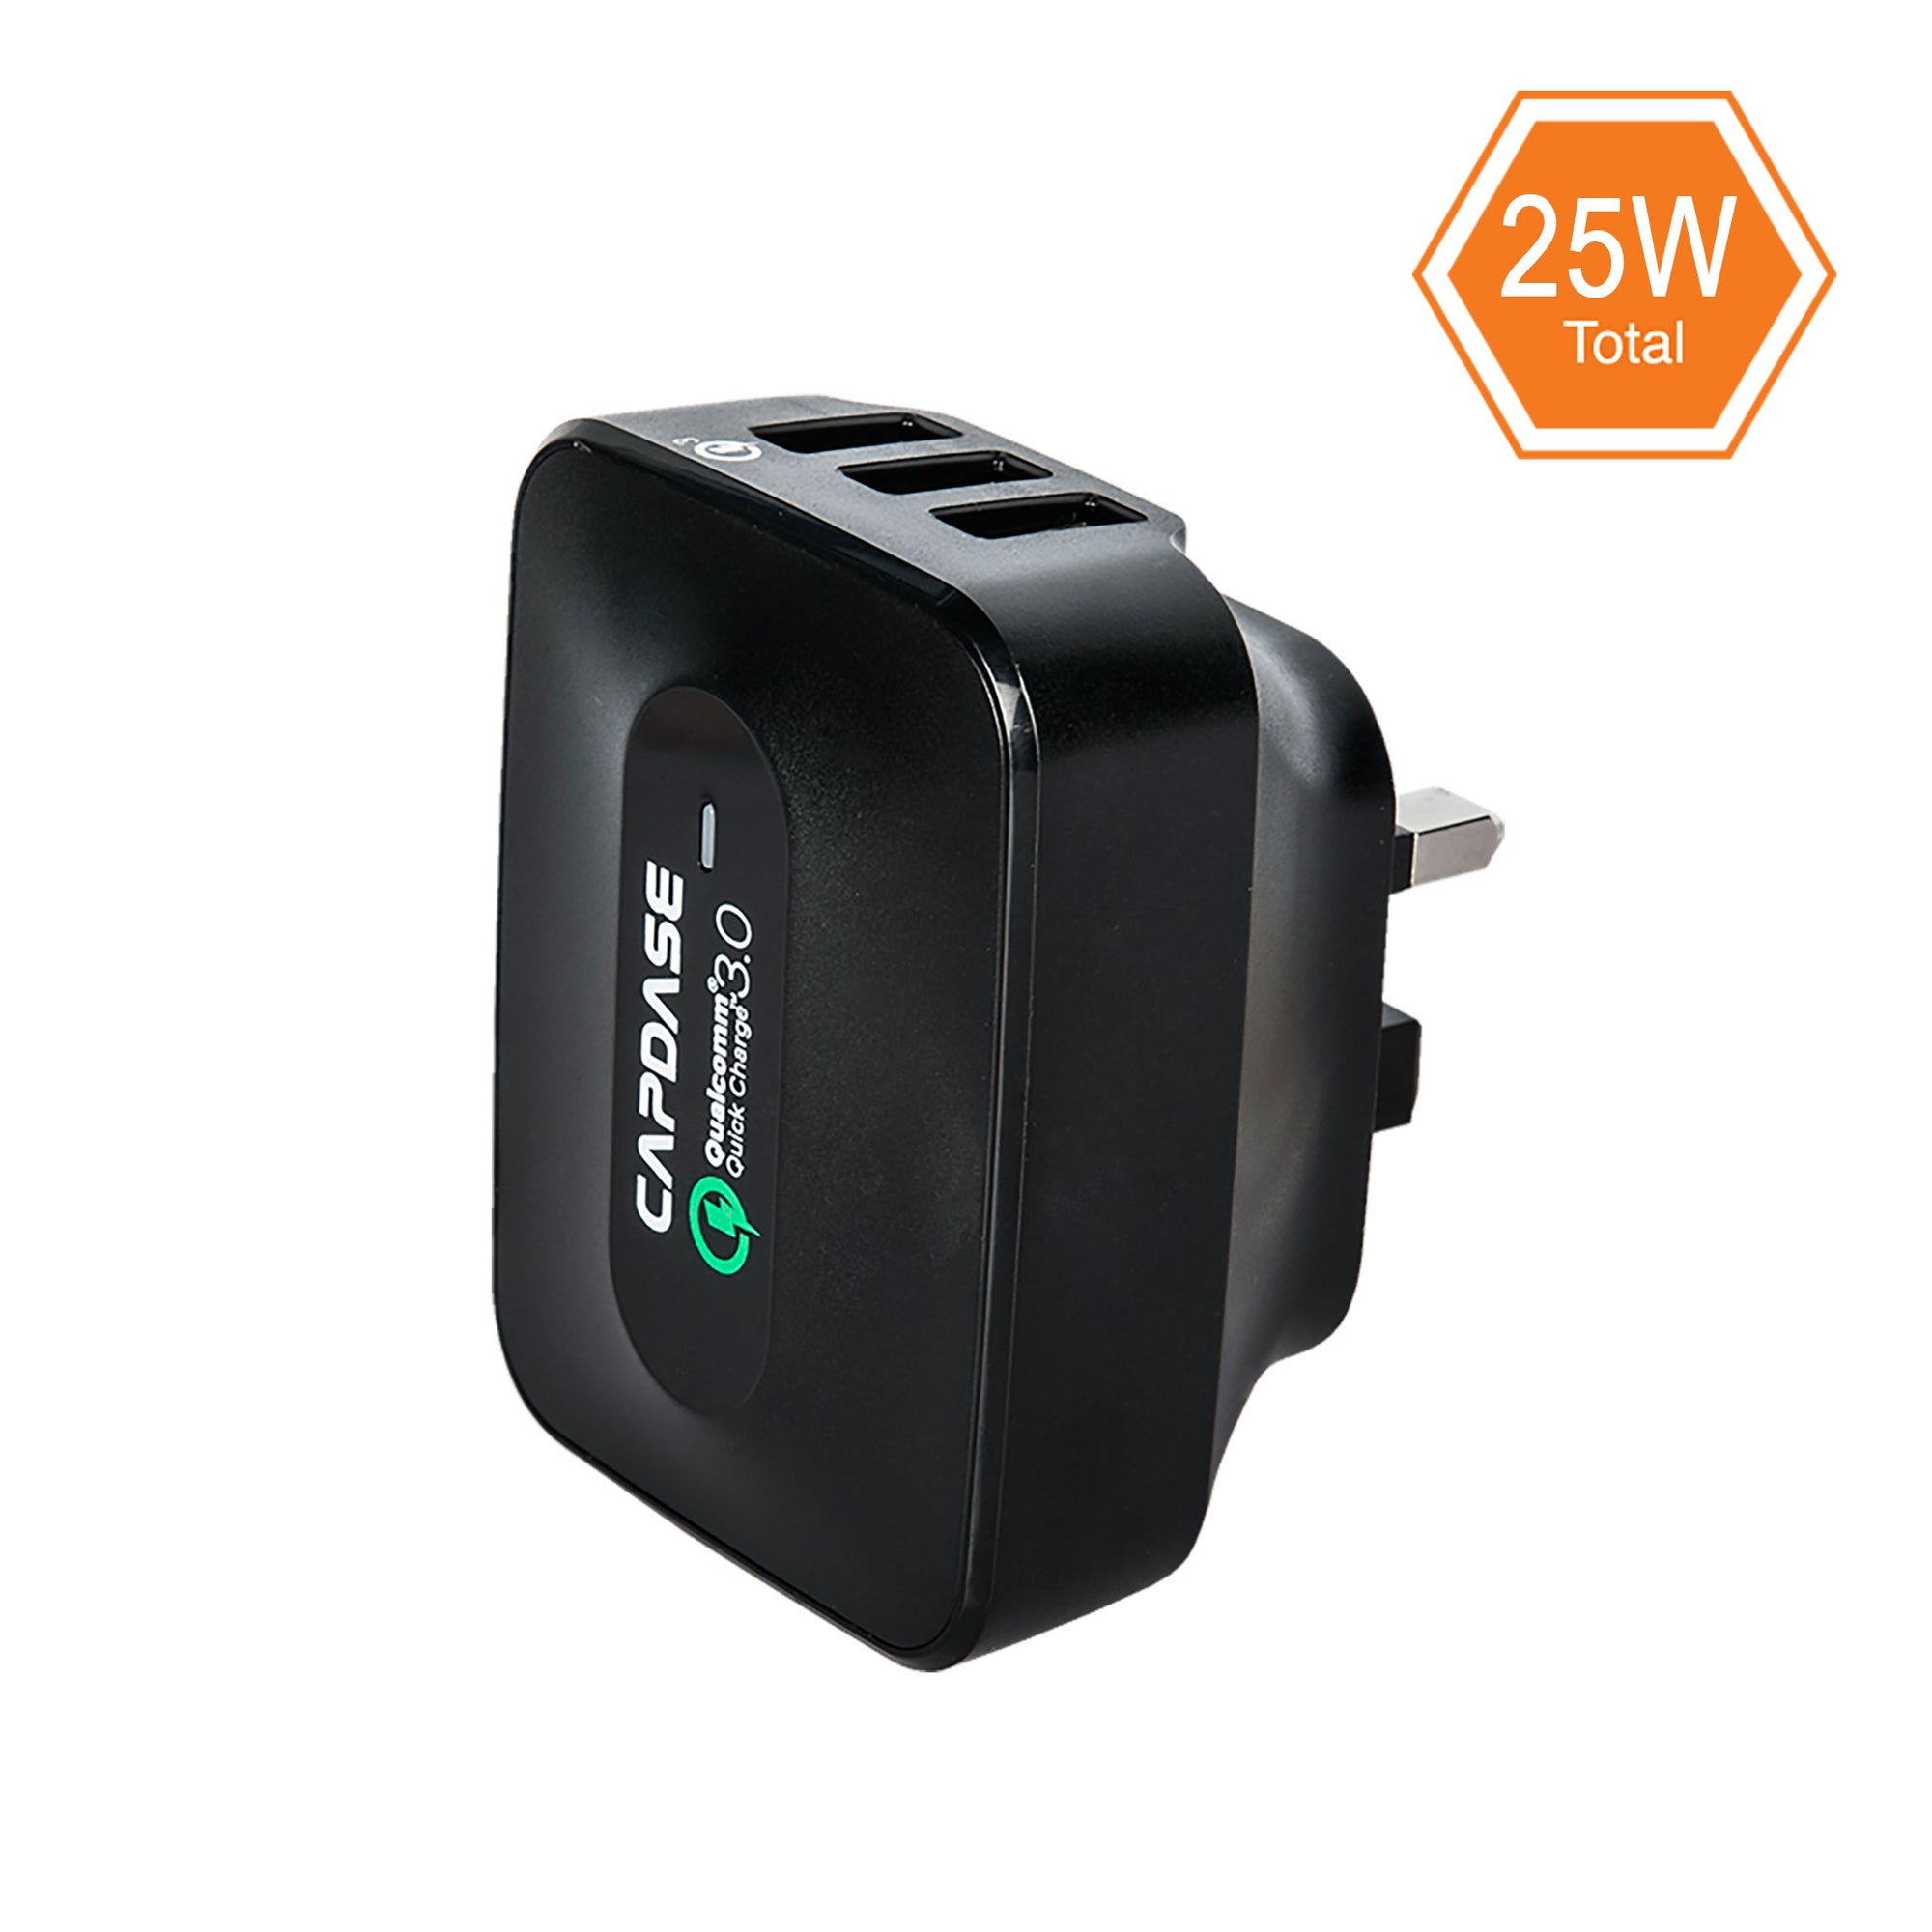 RANGER 3U25B QC3.0 Wall Charger with Cable Kit (UK,BS, Hong Kong Plug)